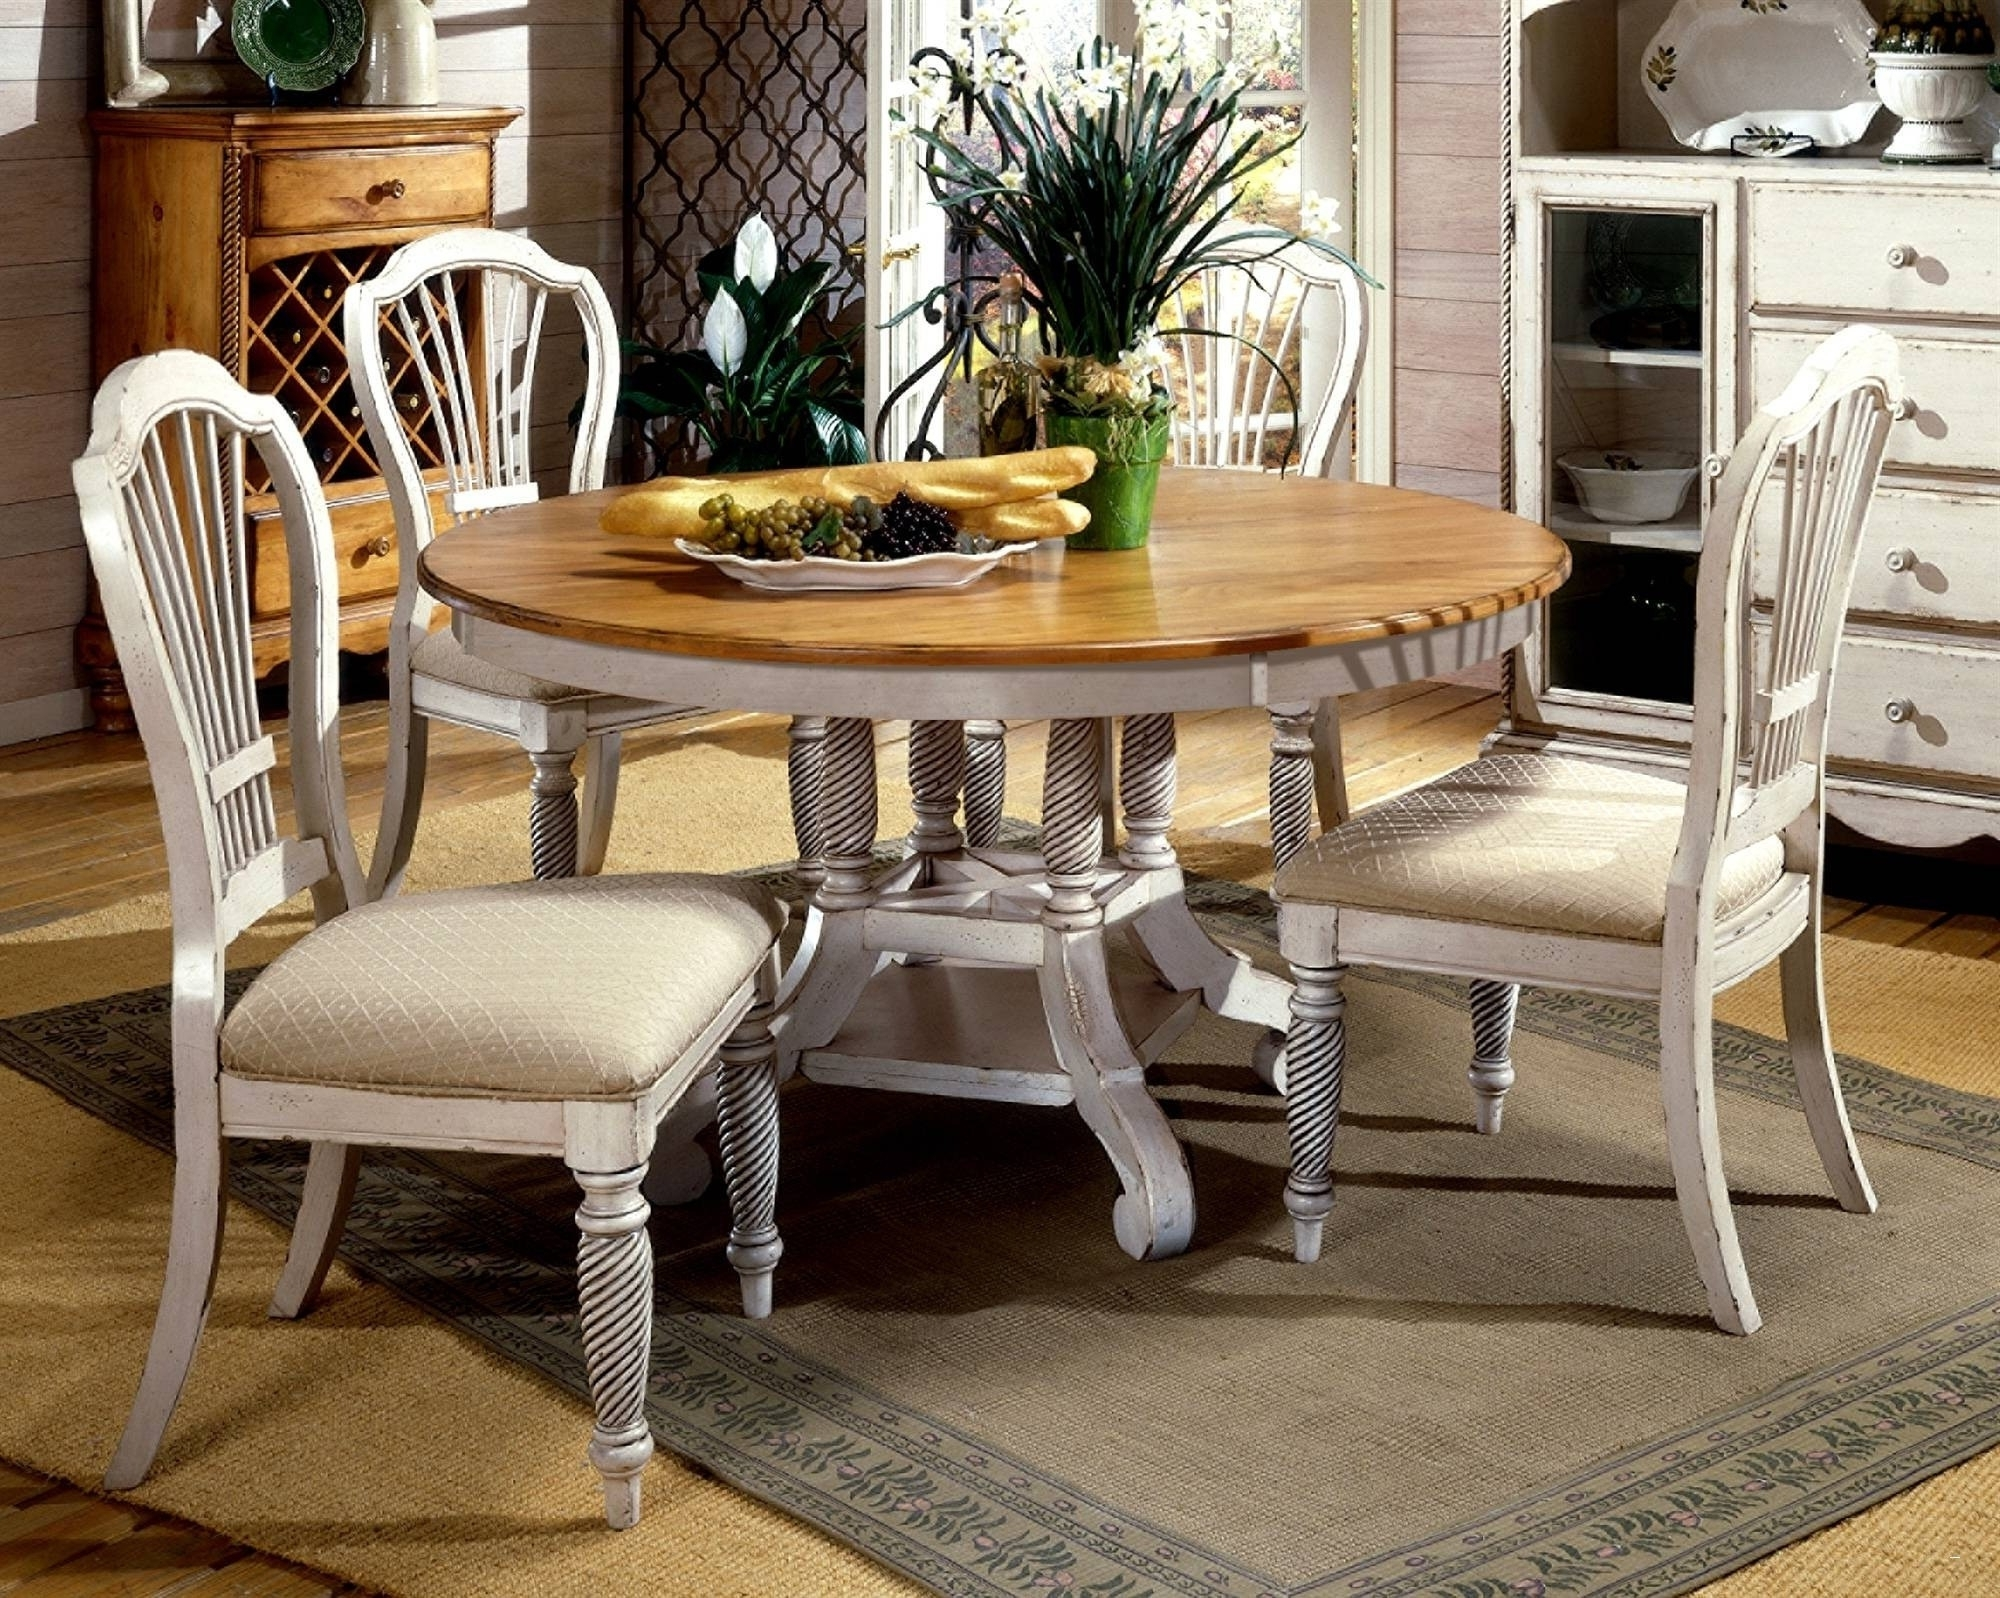 Deals On Dining Table And Chairs Luxury Fabulous Cheap Dining Table inside Well-liked Cheap Dining Tables And Chairs